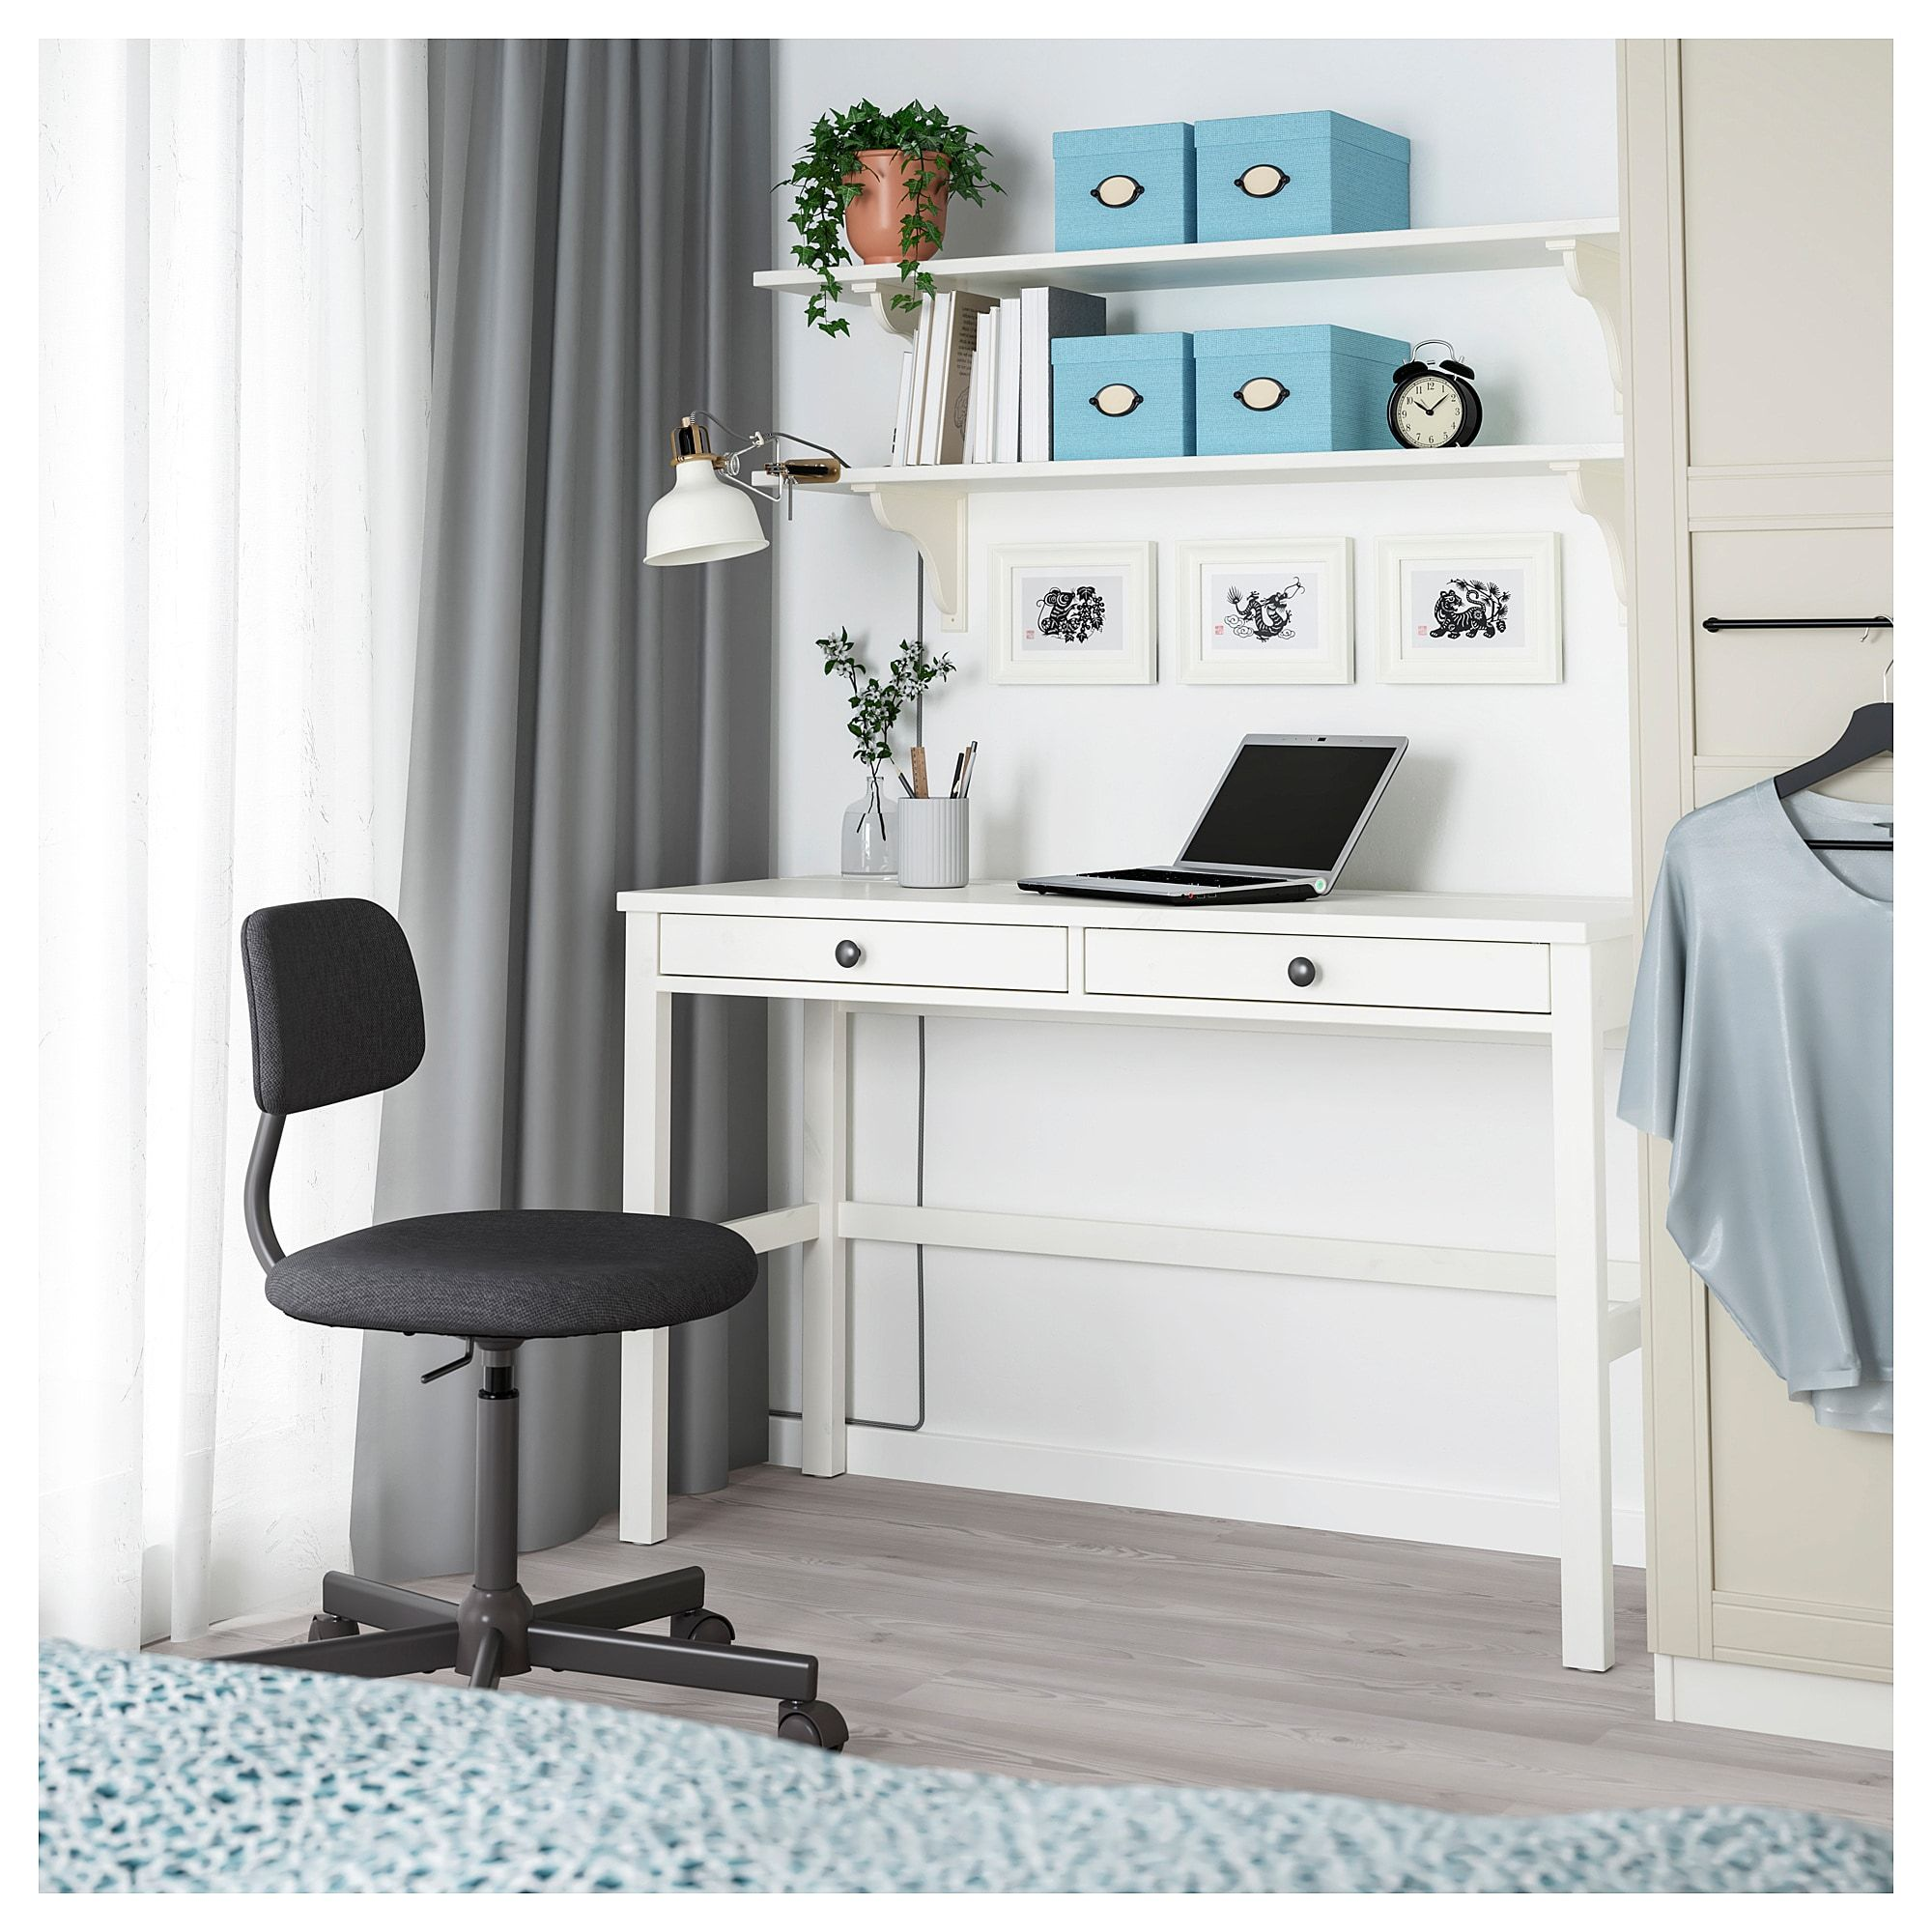 Hemnes Desk With 2 Drawers White Stain 47 1 4x18 1 2 Ikea Ikea Hemnes Desk Hemnes Ikea Hemnes